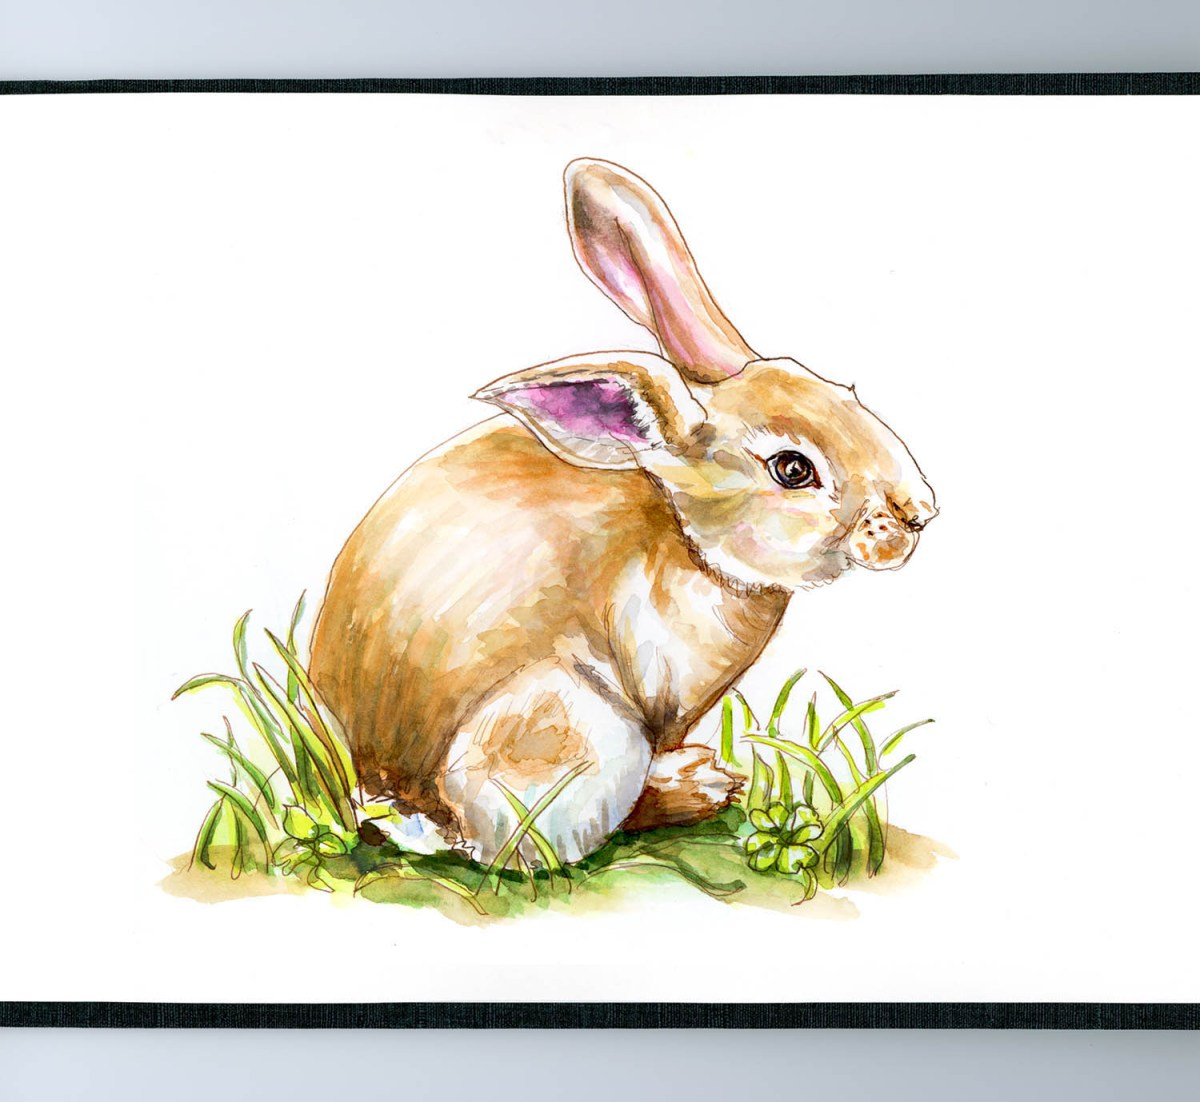 Day 2 - Bunny Rabbit Watercolor Sketch - Doodlewash